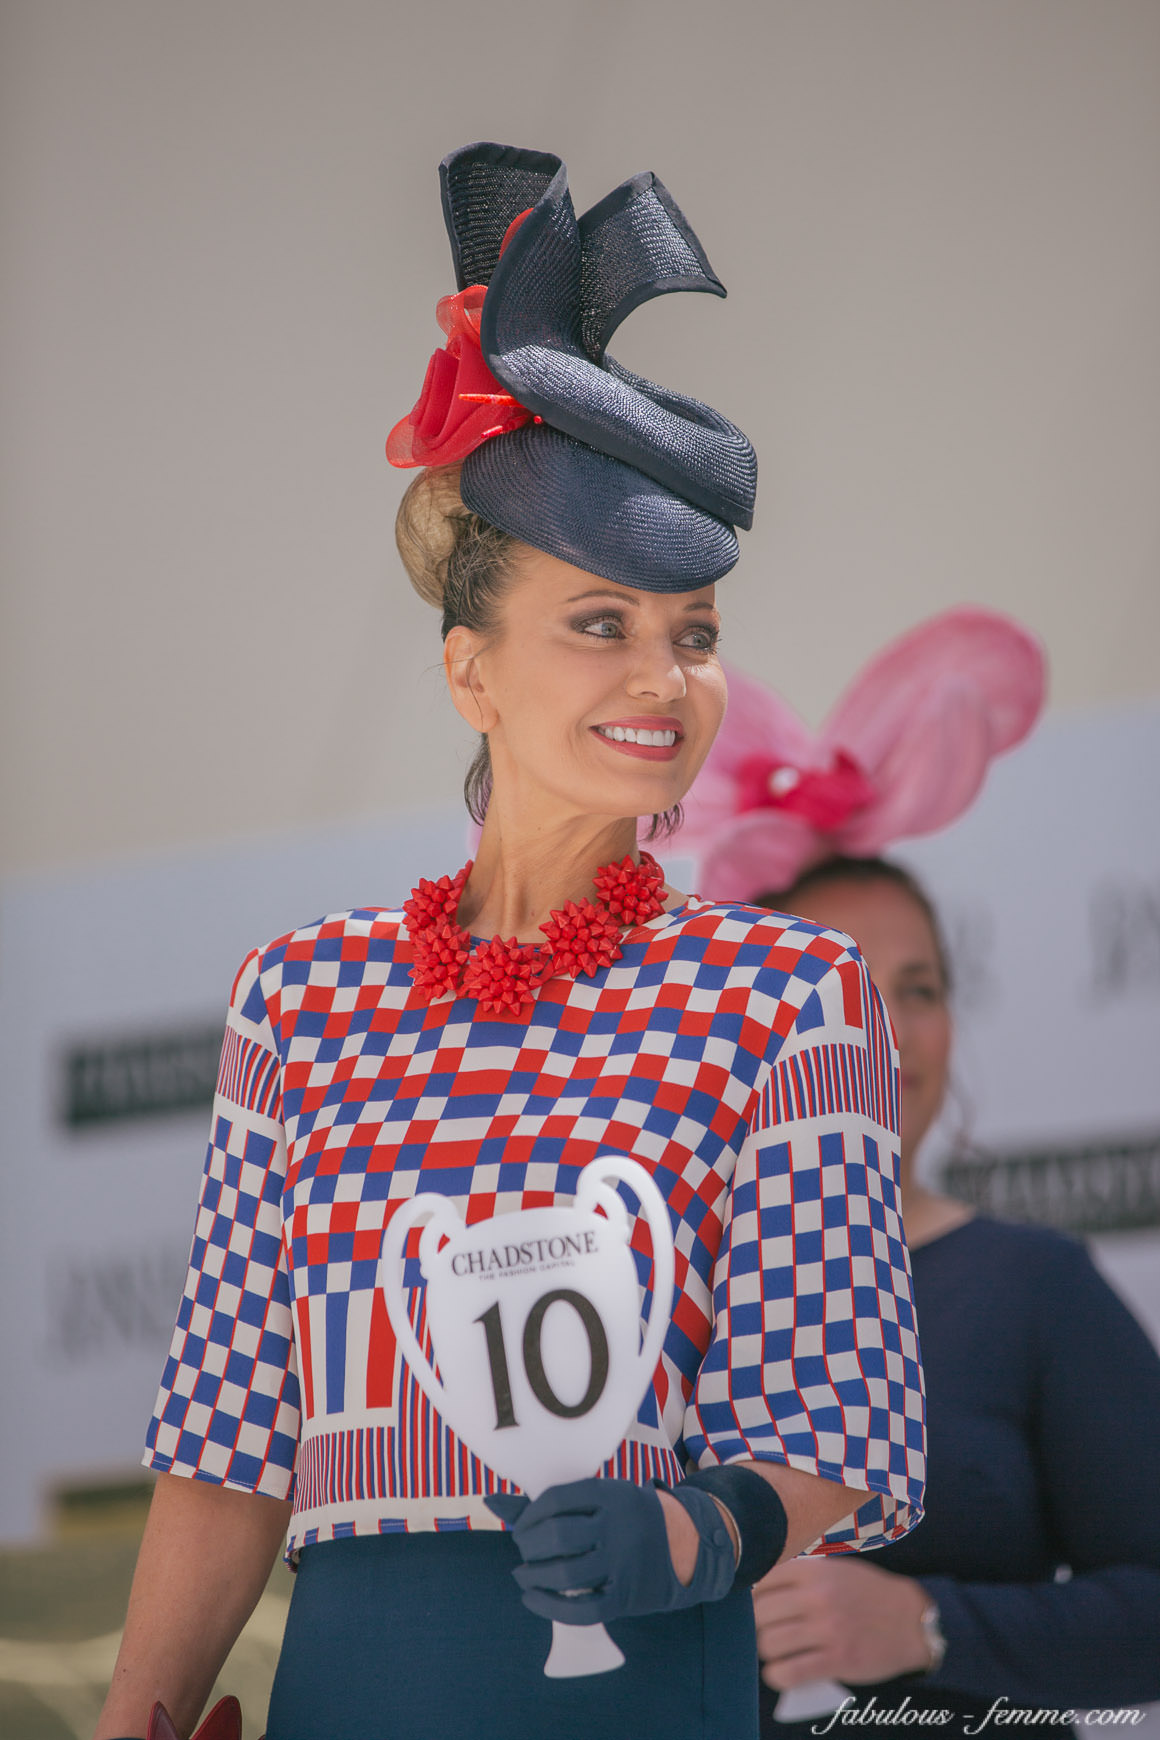 Lisa Wellings - Winner of the Fashions on the Field 2014 at Caulfield Guineas Day (40+ Stylish Ladies)